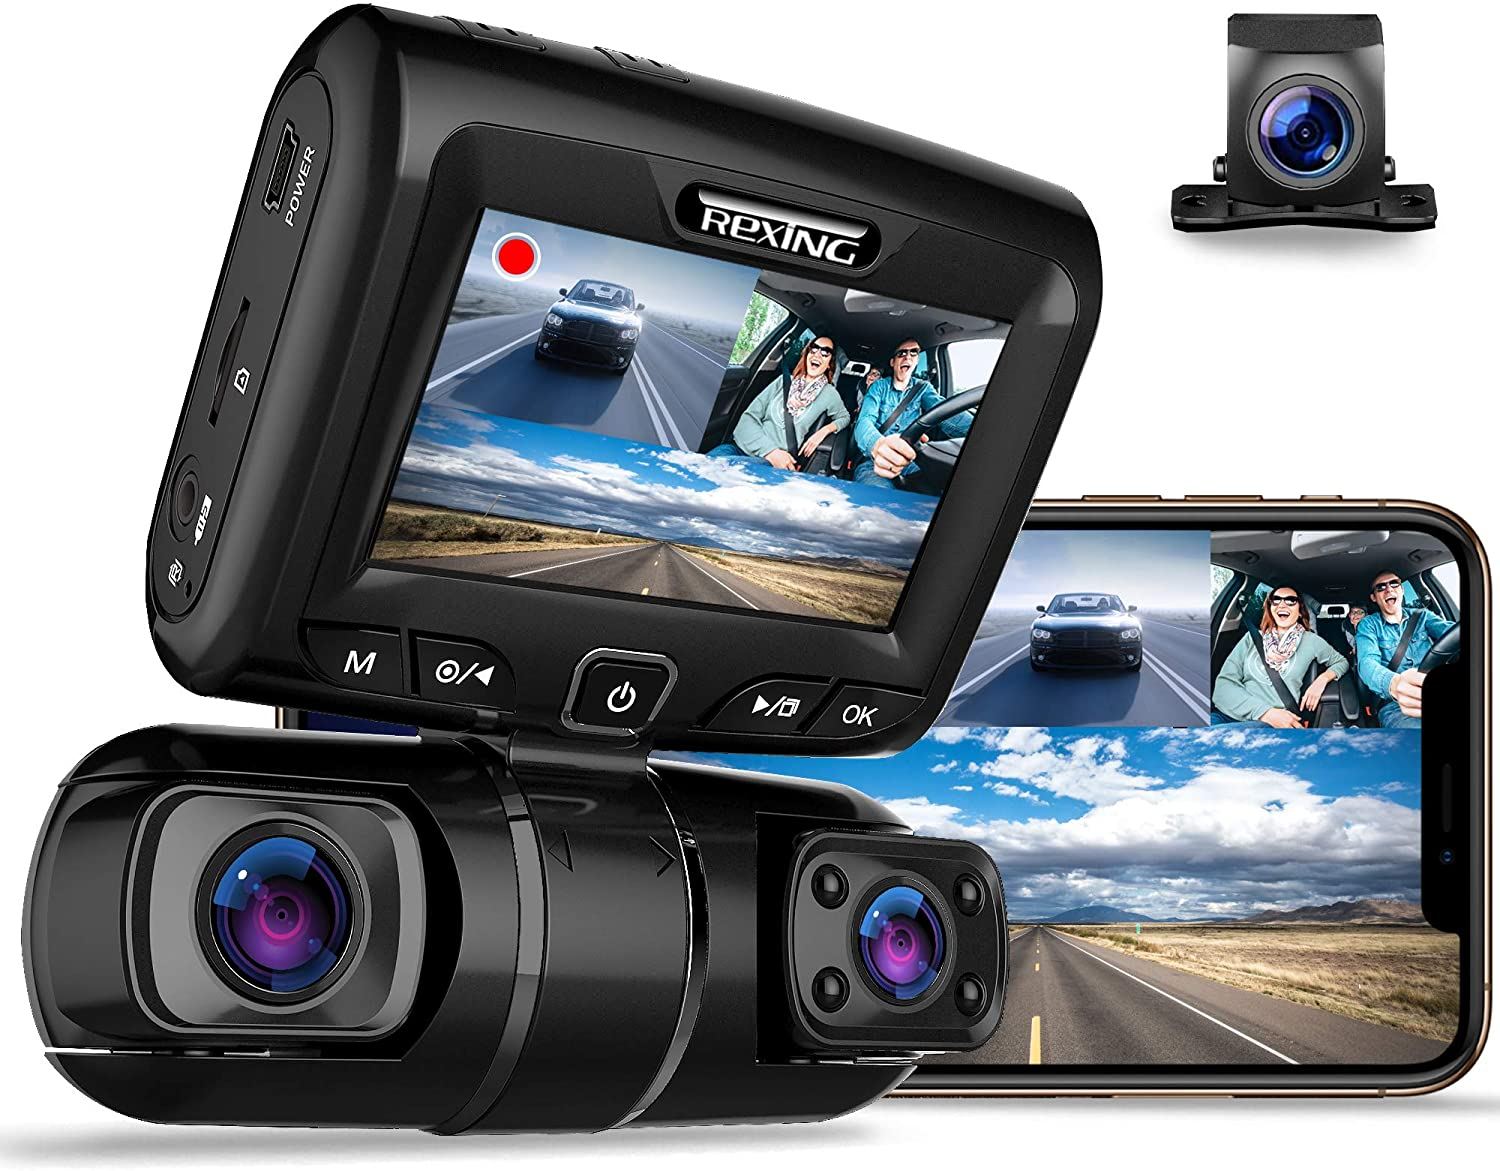 "REXING S1 Dash Cam 3-Channel Front,Rear,Cabin 1080P + 720p +720p, 3"" LCD, Infrared Night Vision, Parking Monitor, Mobile APP, WiFi, 170°Angle Lens, Loop Recording, Supercapacitor, Support up to 256GB"